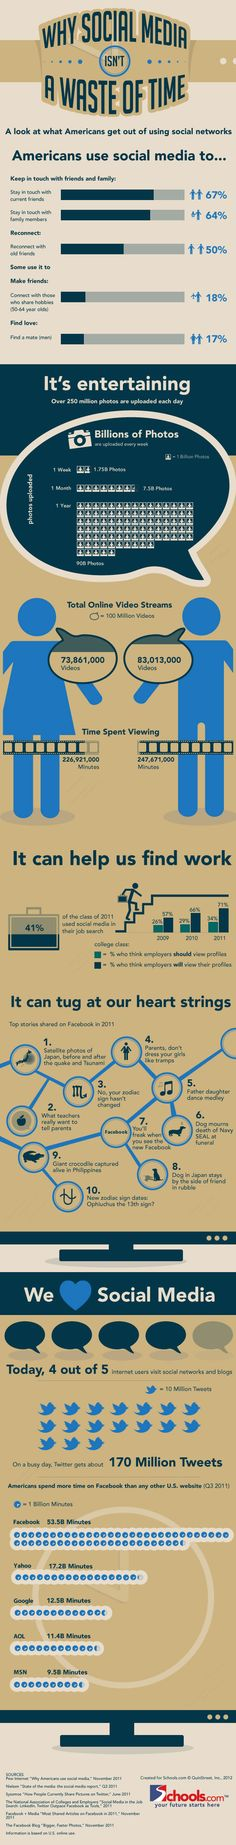 Why Social Media isn't a waste of Time. Interessting infographics about how Amercians use social media services.